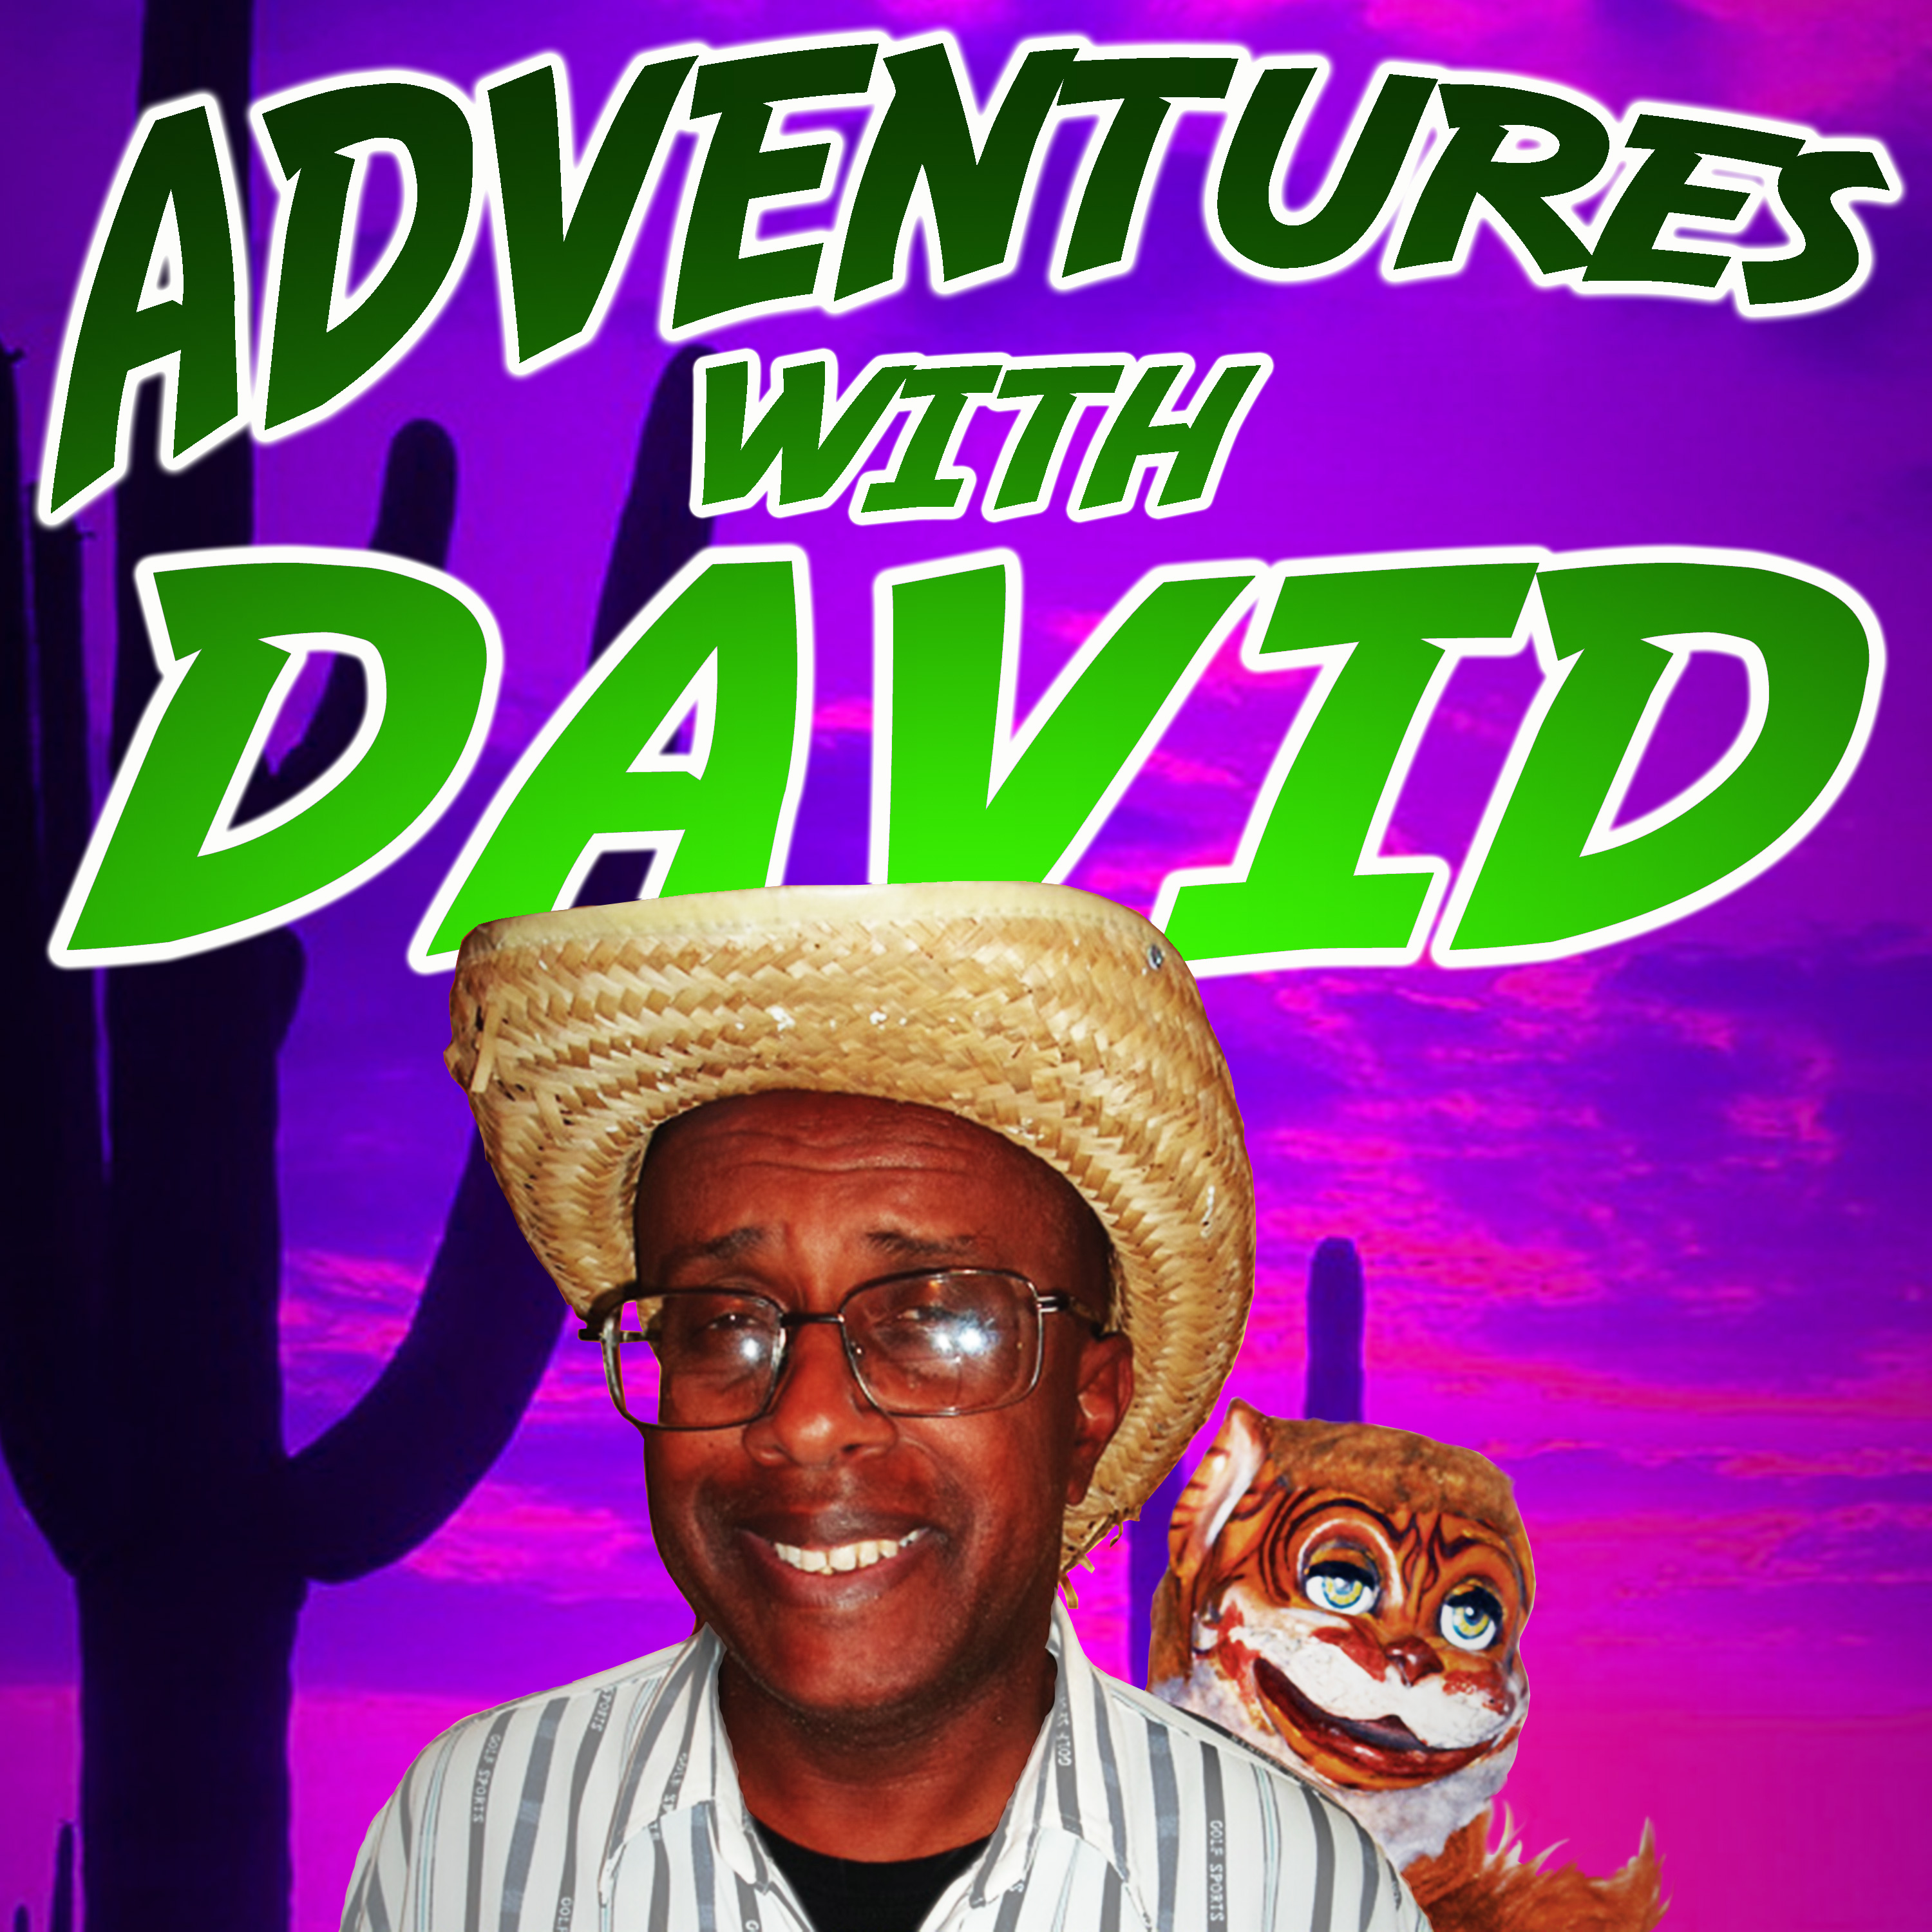 Adventures With David show image